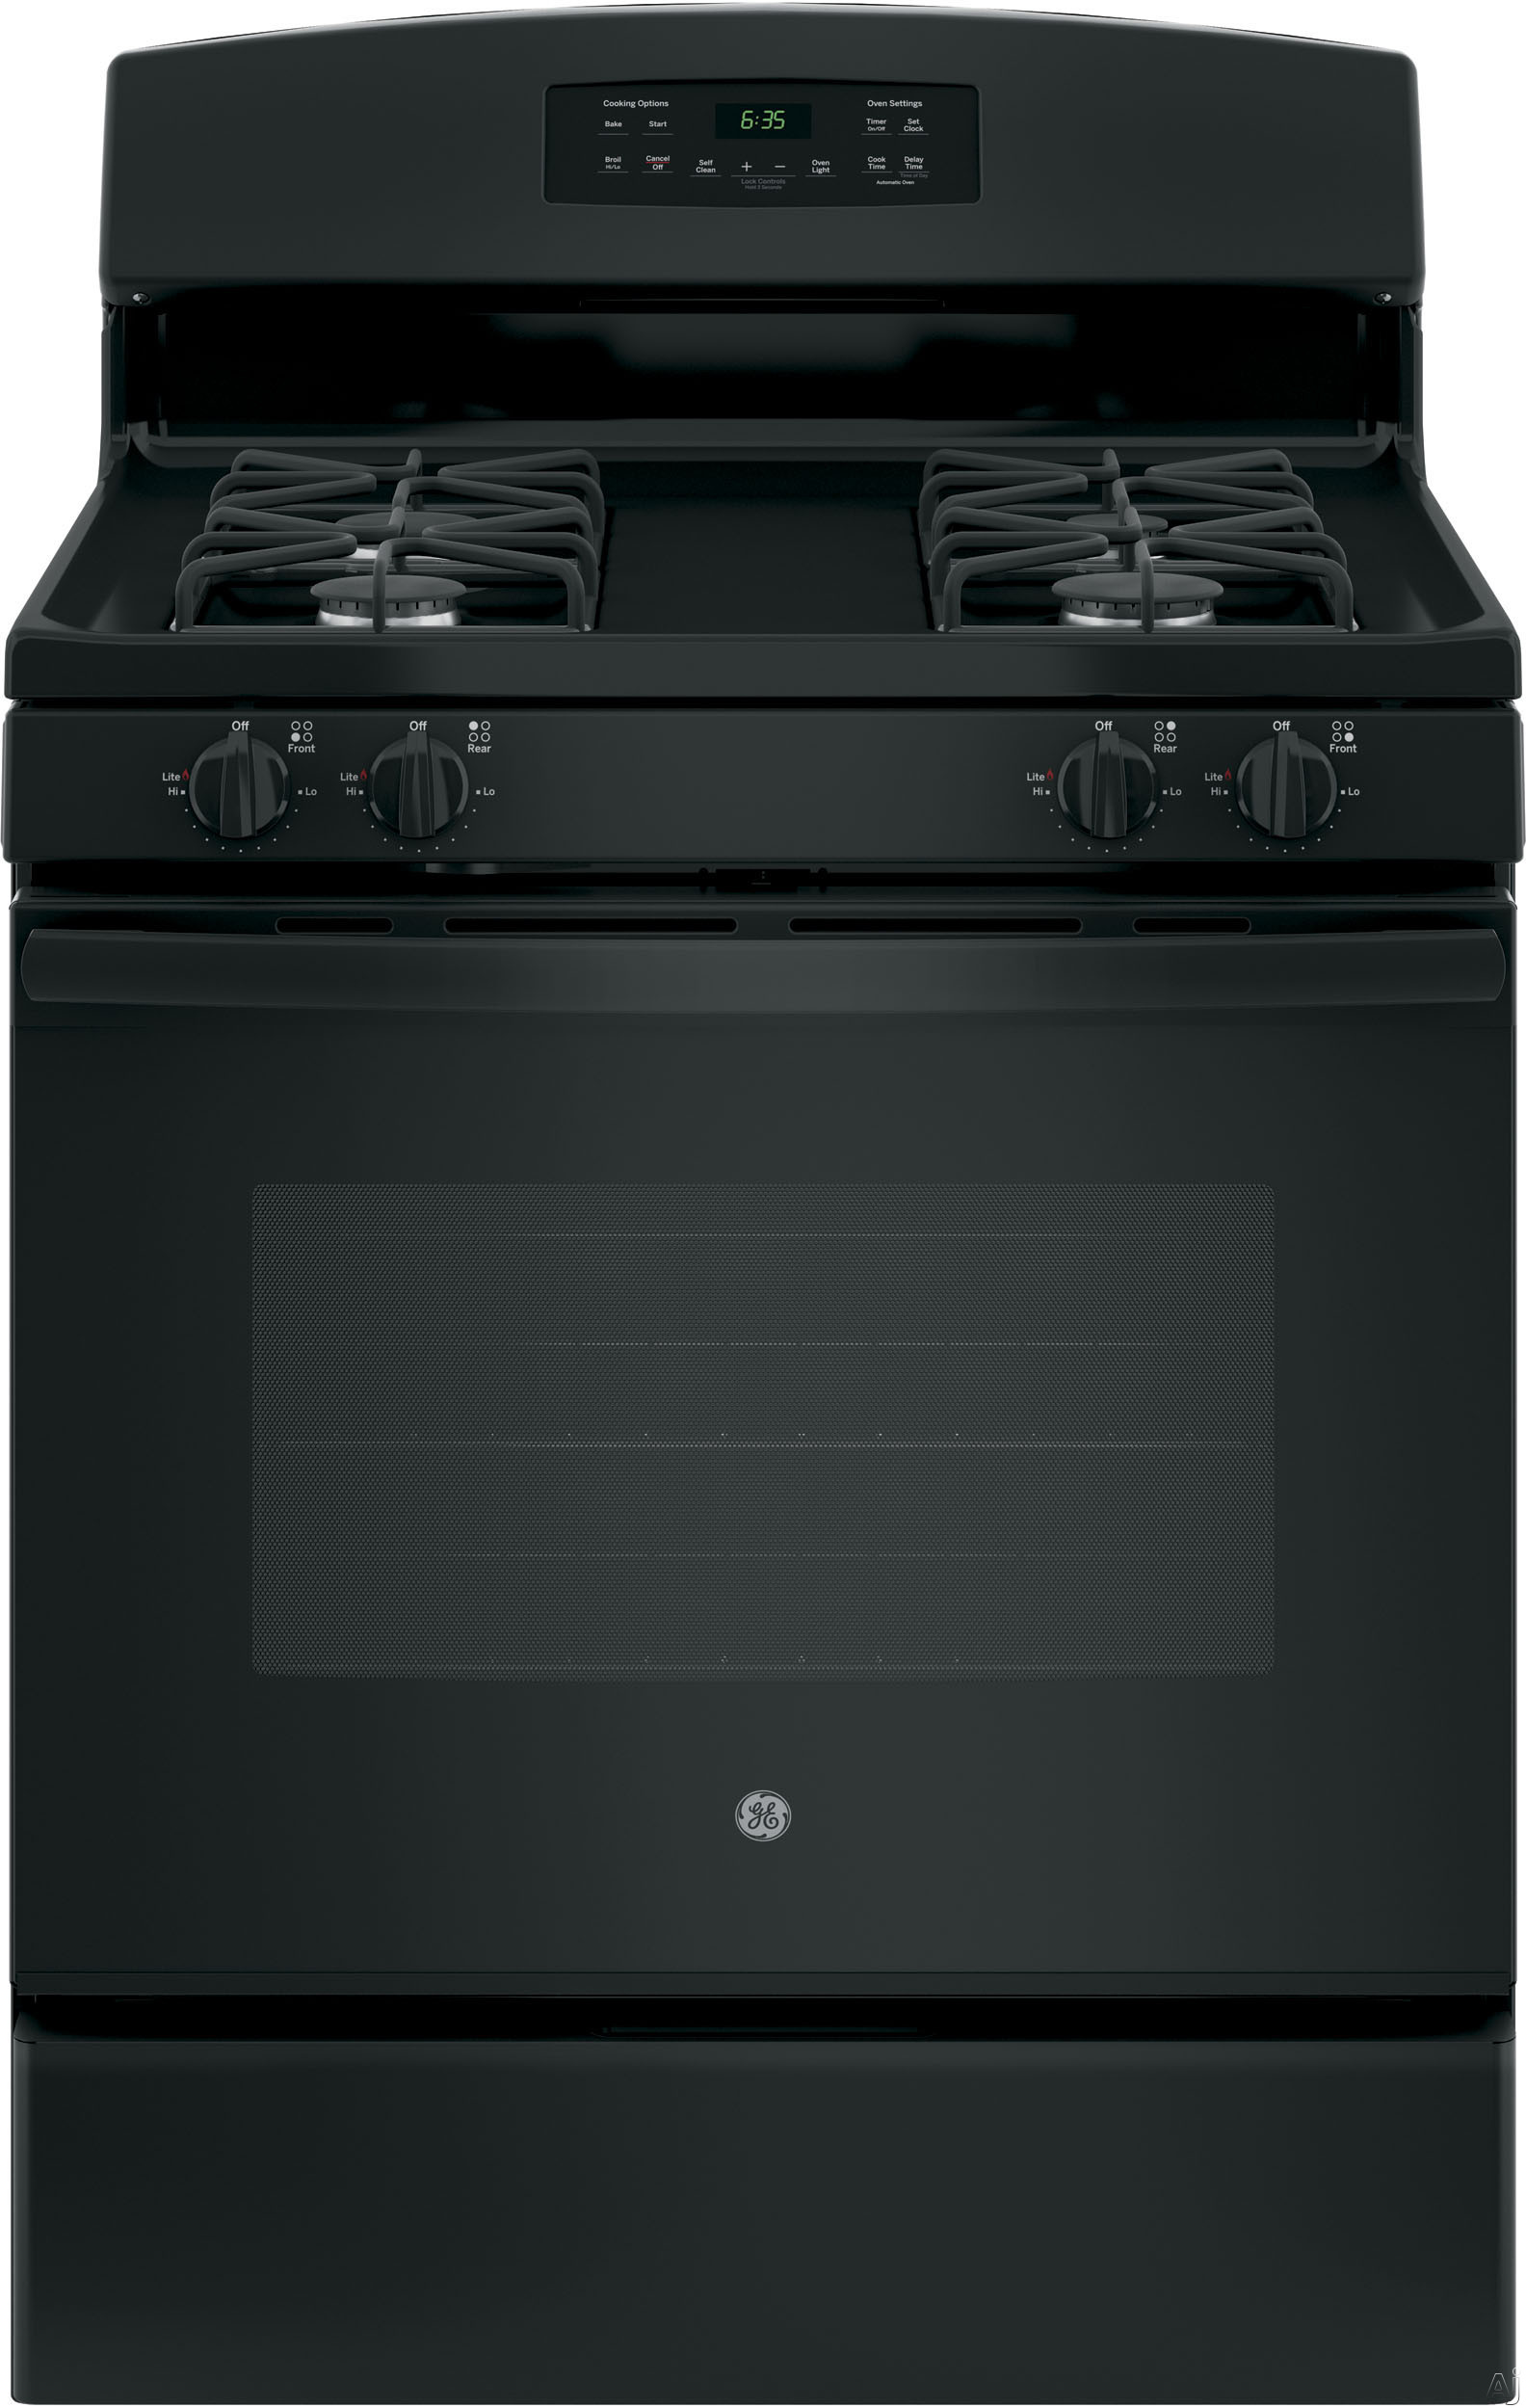 GE JGB635DEKBB 30 Inch Freestanding Gas Range with Precise Simmer Burner, Storage Drawer, Self-Clean, In-Oven Broiler, 4 Sealed Burners, 5.0 cu. ft. Capacity and Star-K Certified: Black